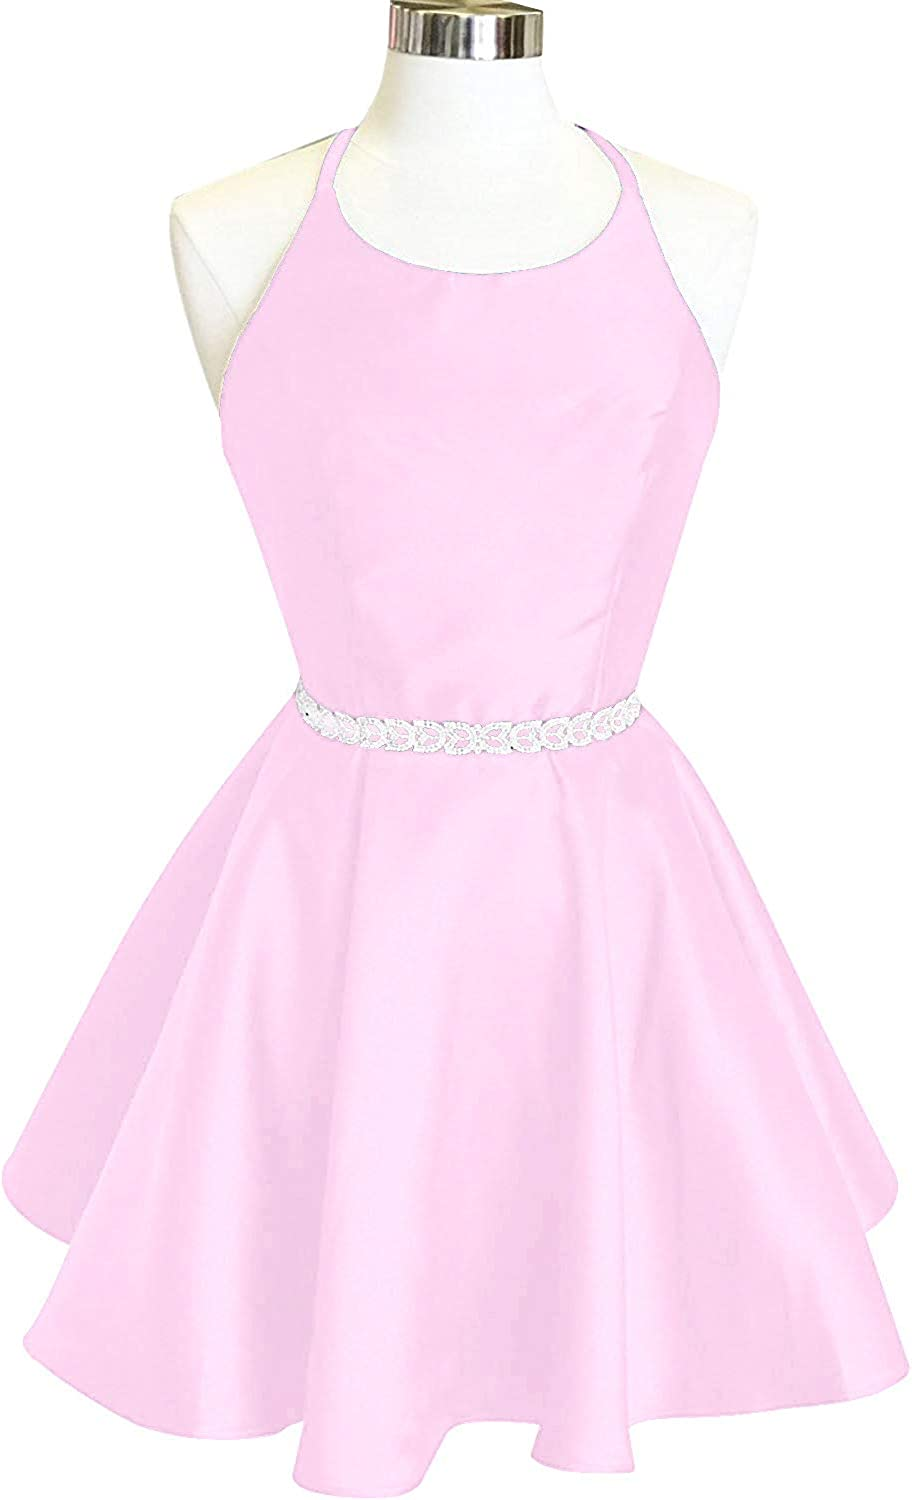 Dreambridal Juniors Short Halter Homecoming Dresses Pockets Satin A Line Cocktail Prom Gowns 024